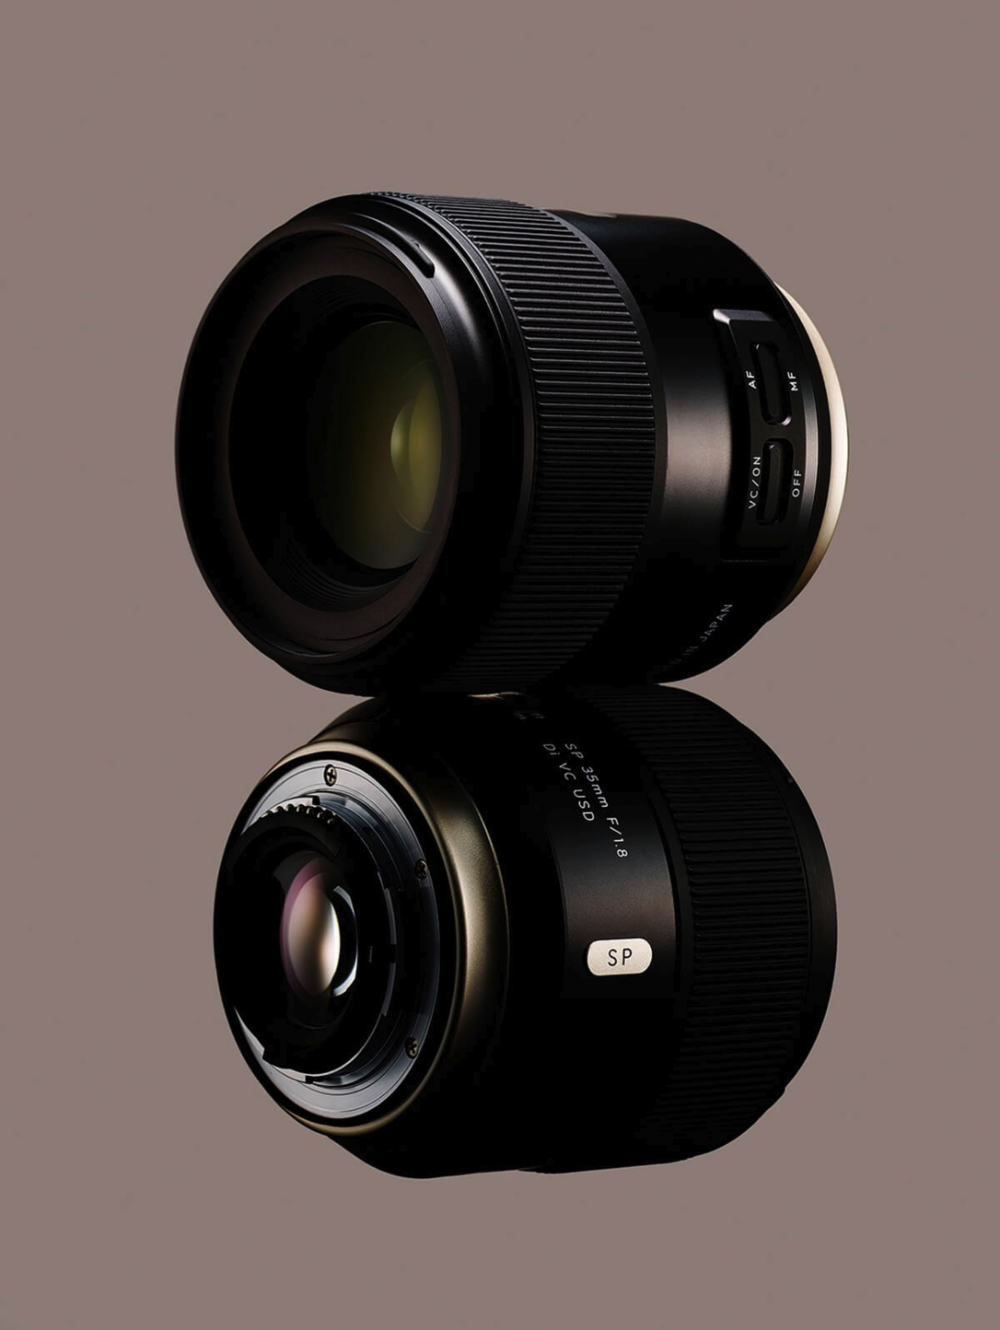 TAMRON New SP Series